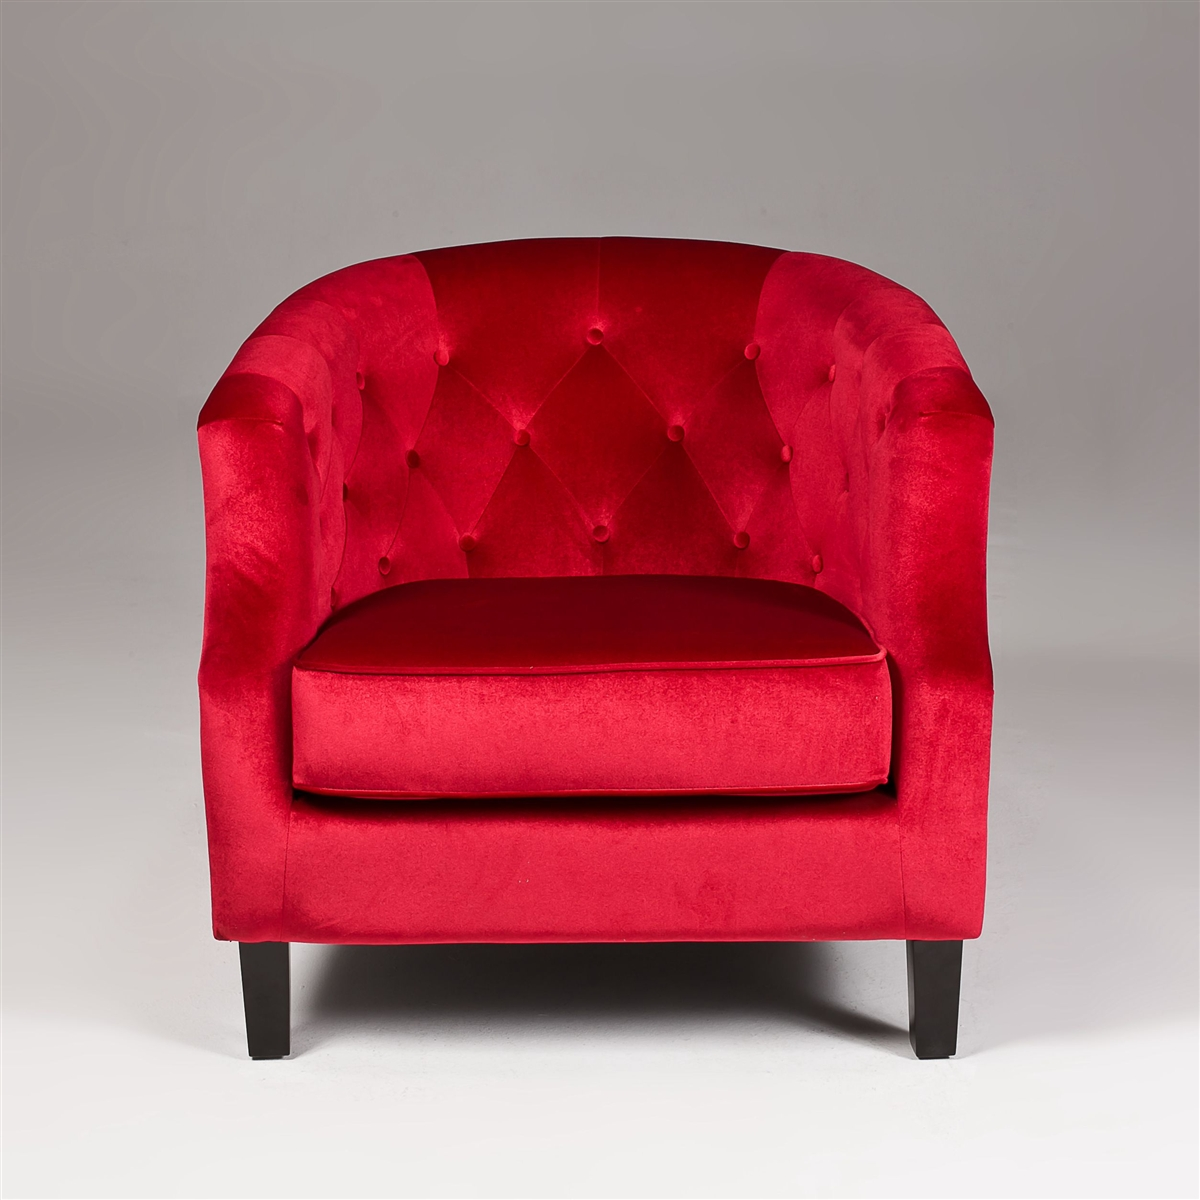 Red Sofa Red Velvet Sofa Red Accent Chair Velvet Accent Chair